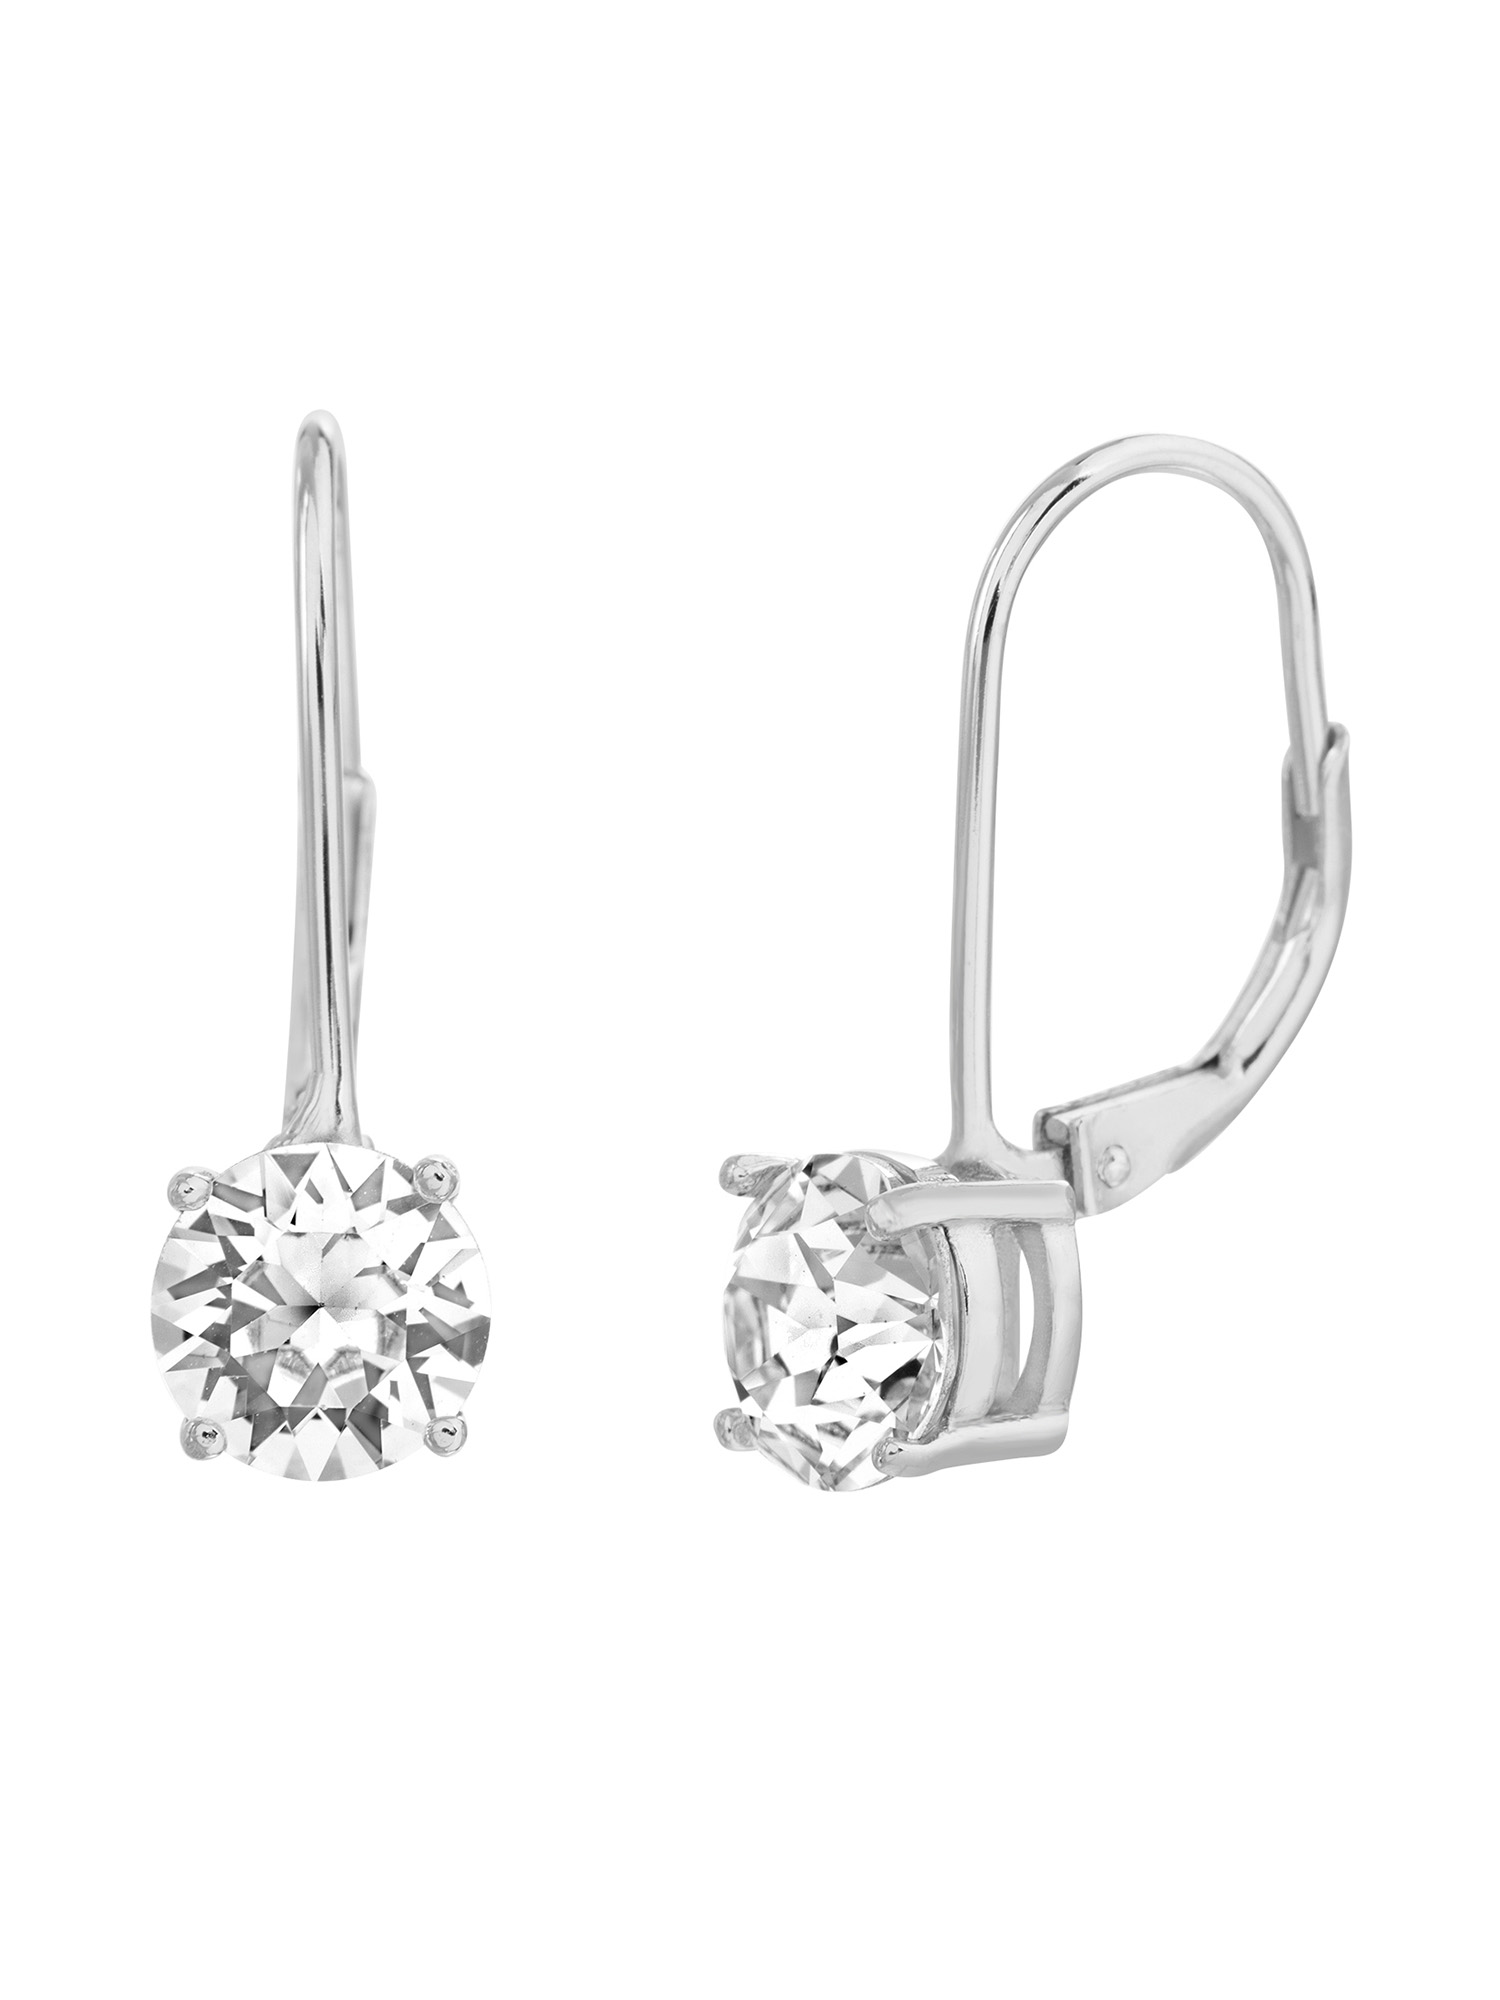 Faceted Crystals Lever Back Earring in Sterling Silver made with Swarovski Crystals